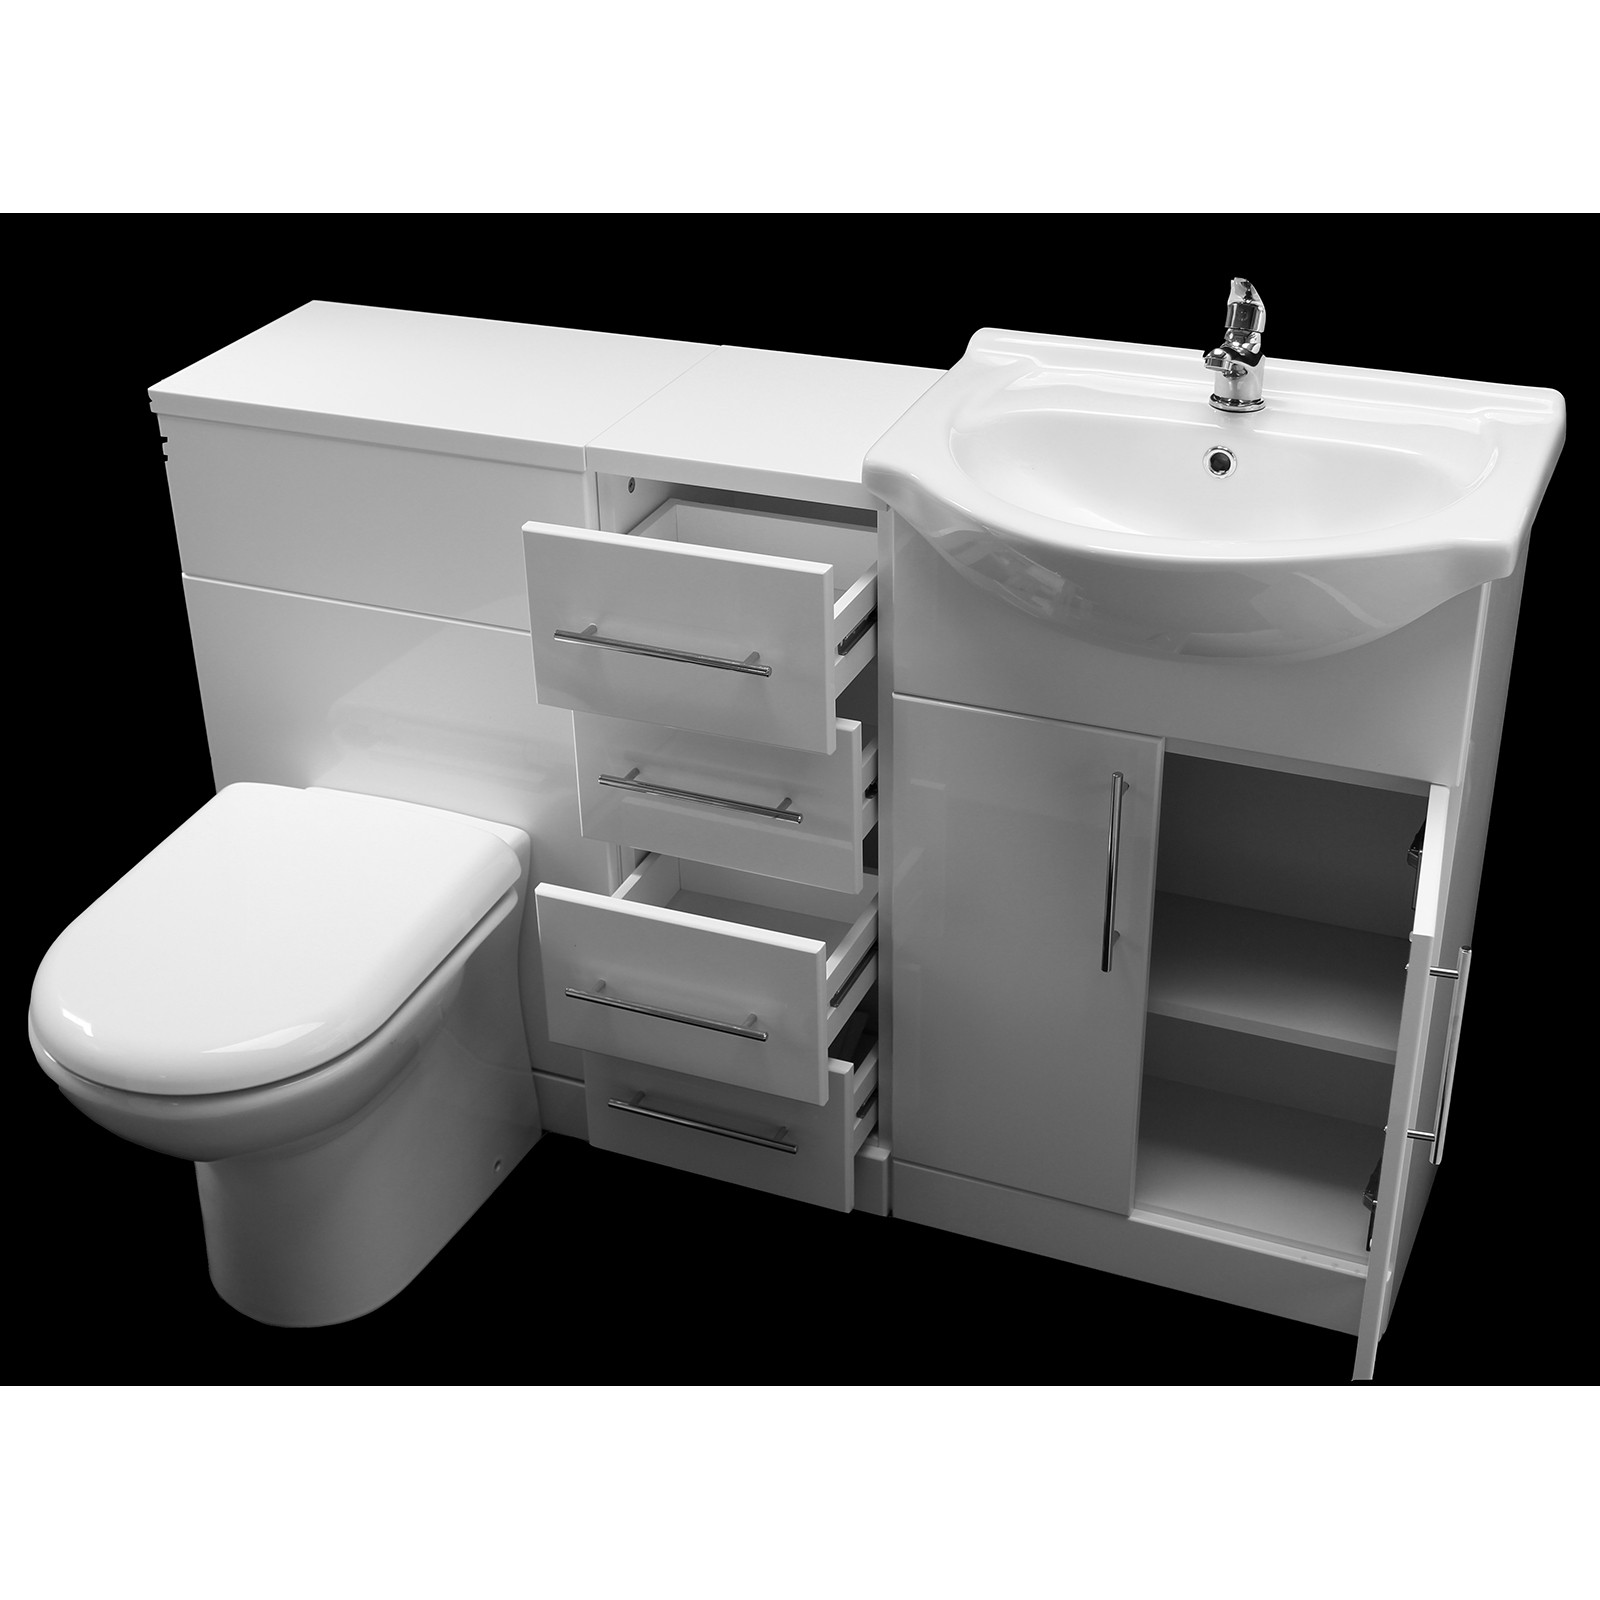 Allbits eden white gloss wc combination 650 vanity unit 4 drawer unit at allbits for Bathroom combination vanity units